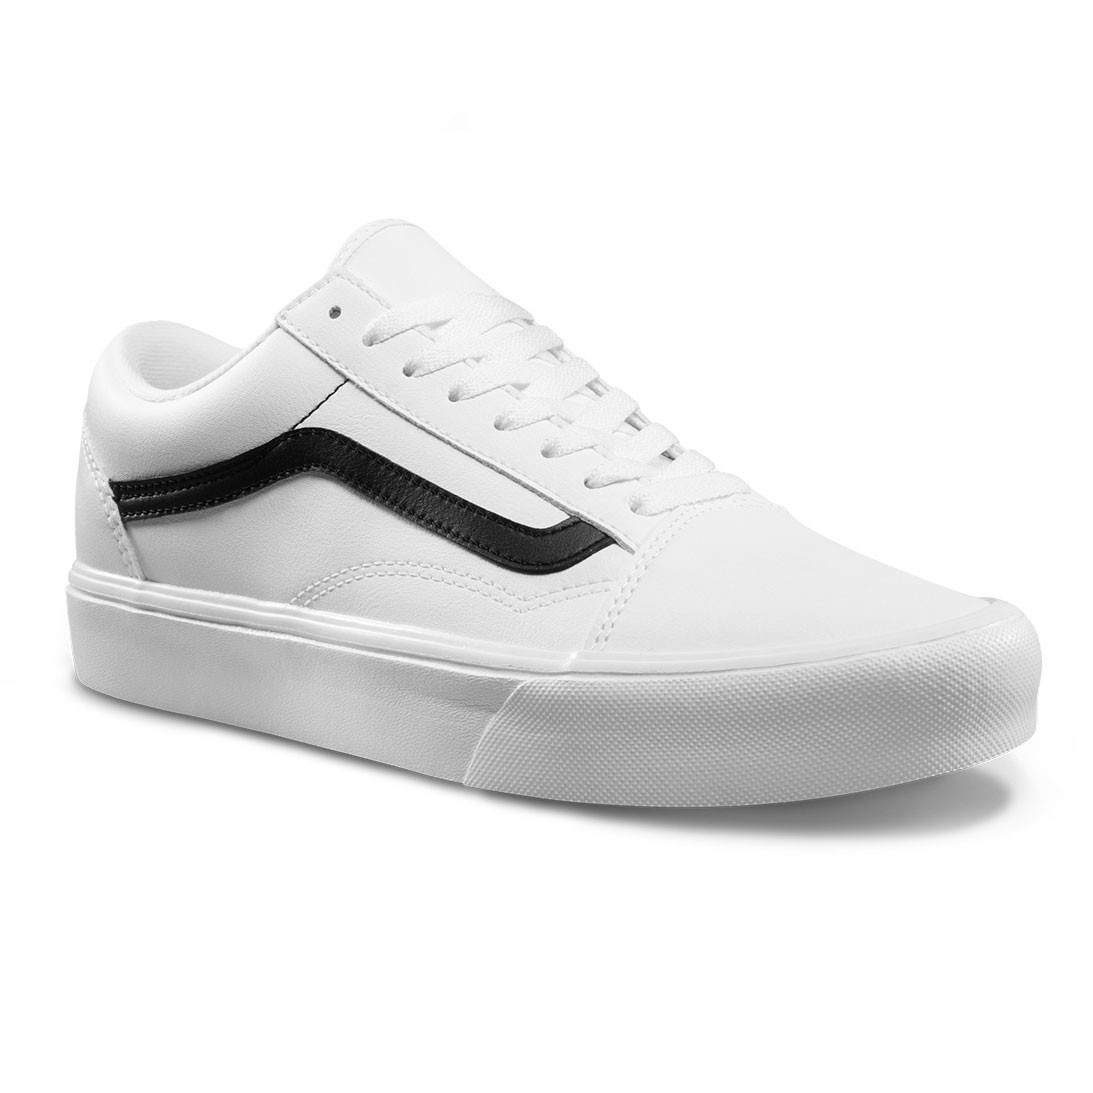 Tenisky Vans Old Skool Lite classic tumble true white black ... 959b14c0cff